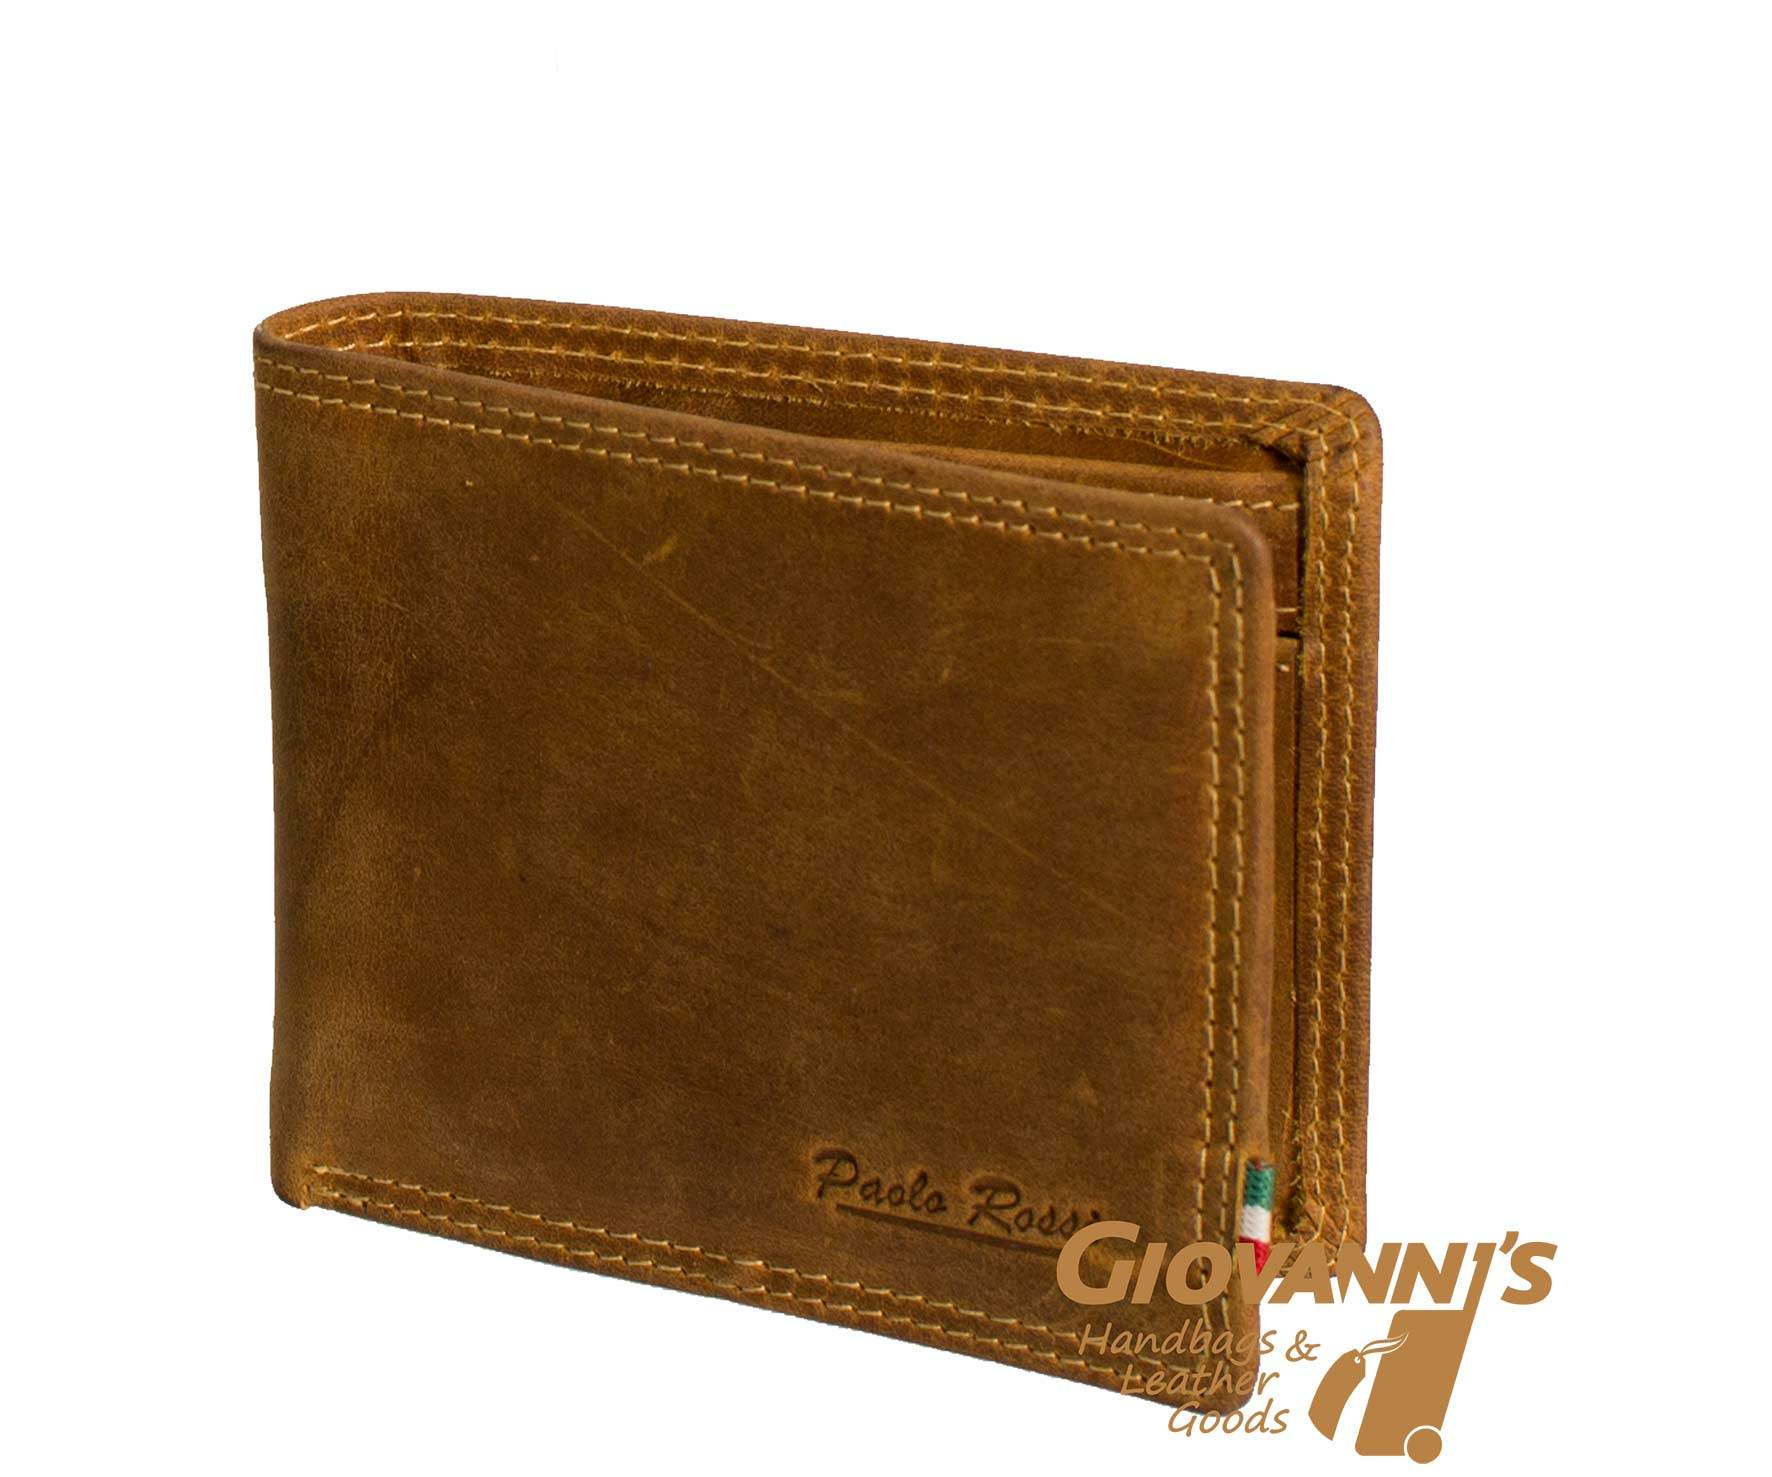 Giobags H1 Paolo Rossie Bifold Leather Wallet